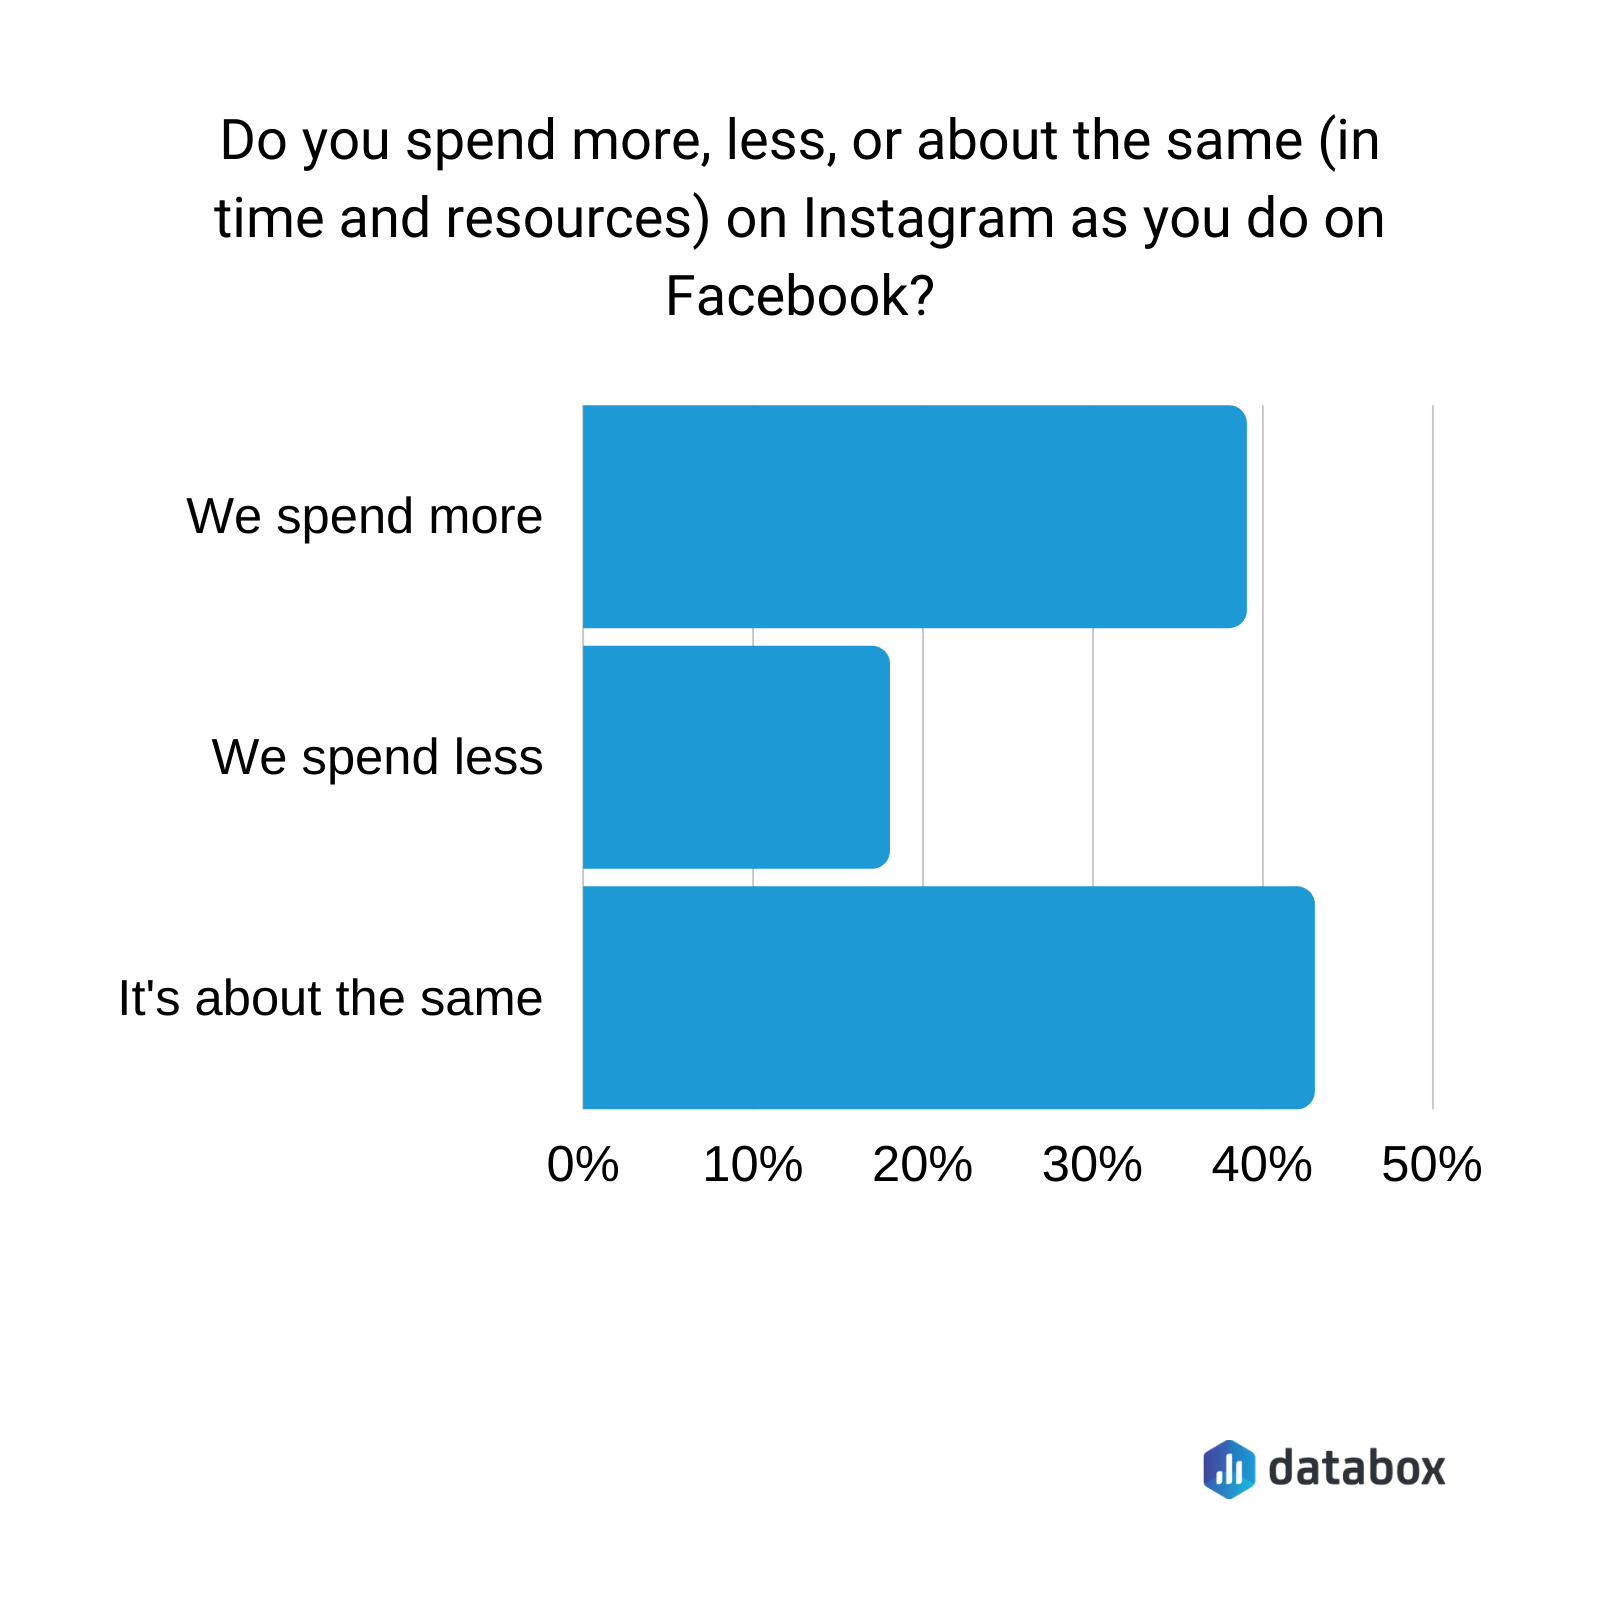 Do you spend more, less, or about the same in time and resources on IG as you do on FB?